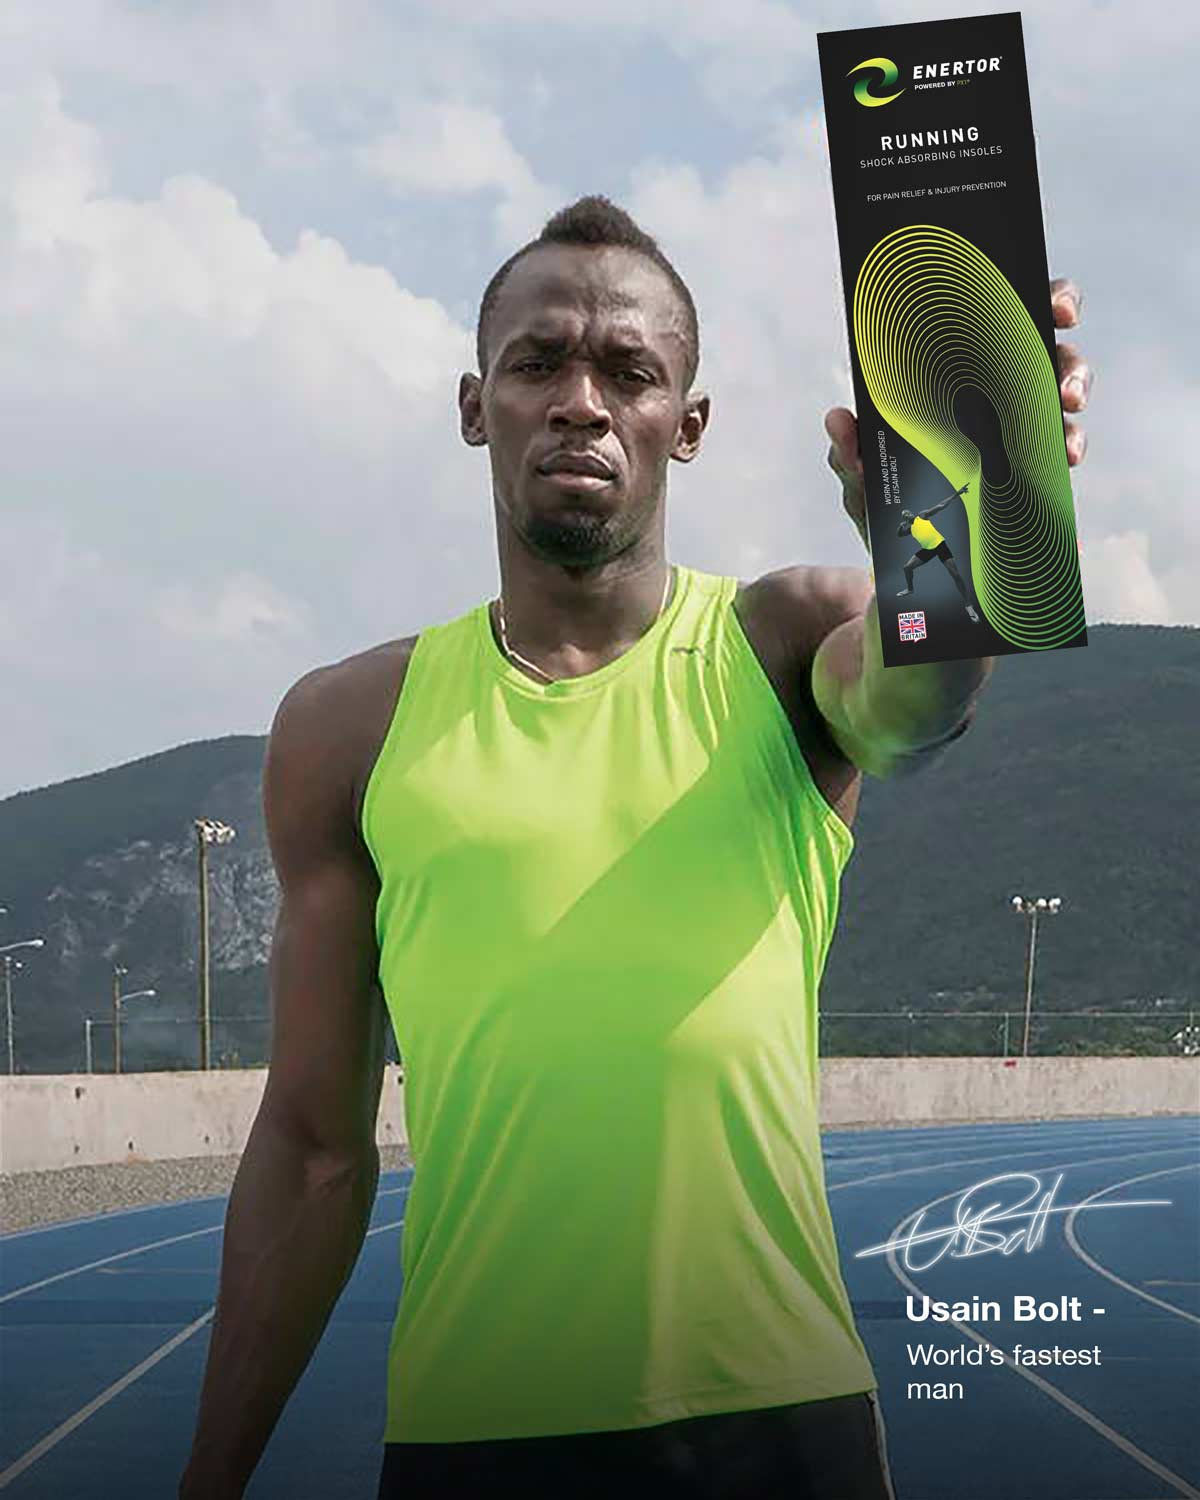 Usain Bolt holding Enertor Running Insoles - Twin Pack